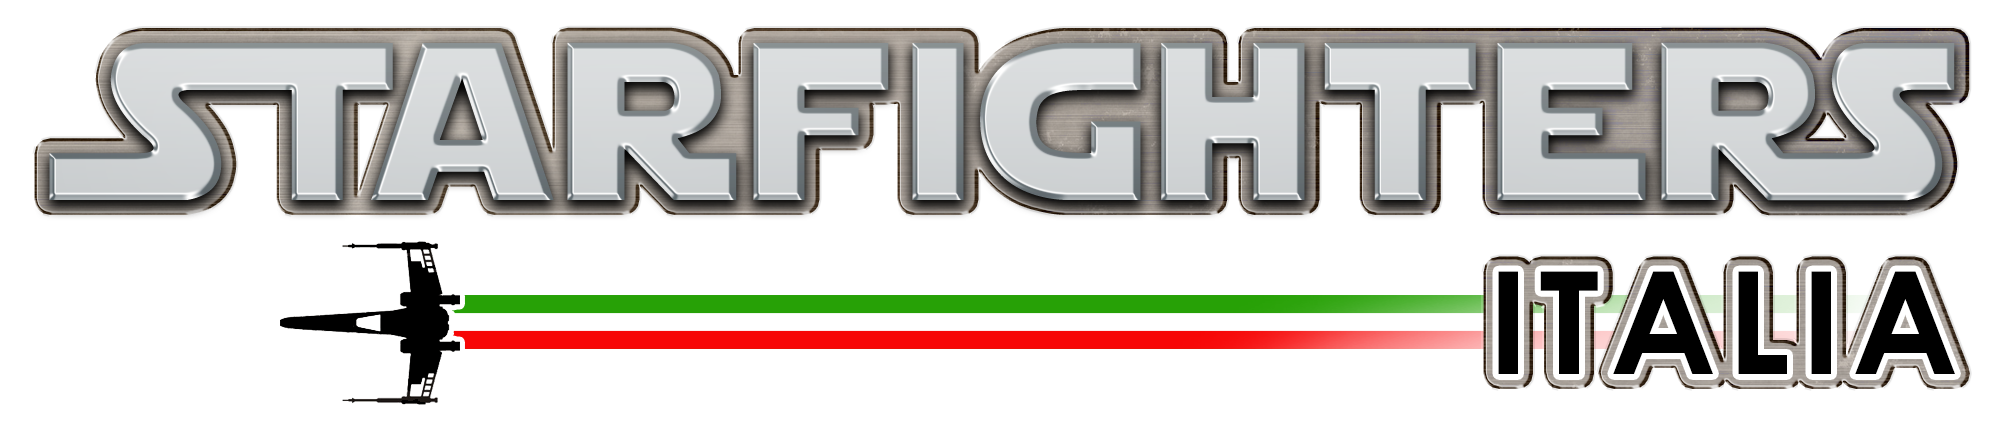 STARFIGHTERS ITALIA